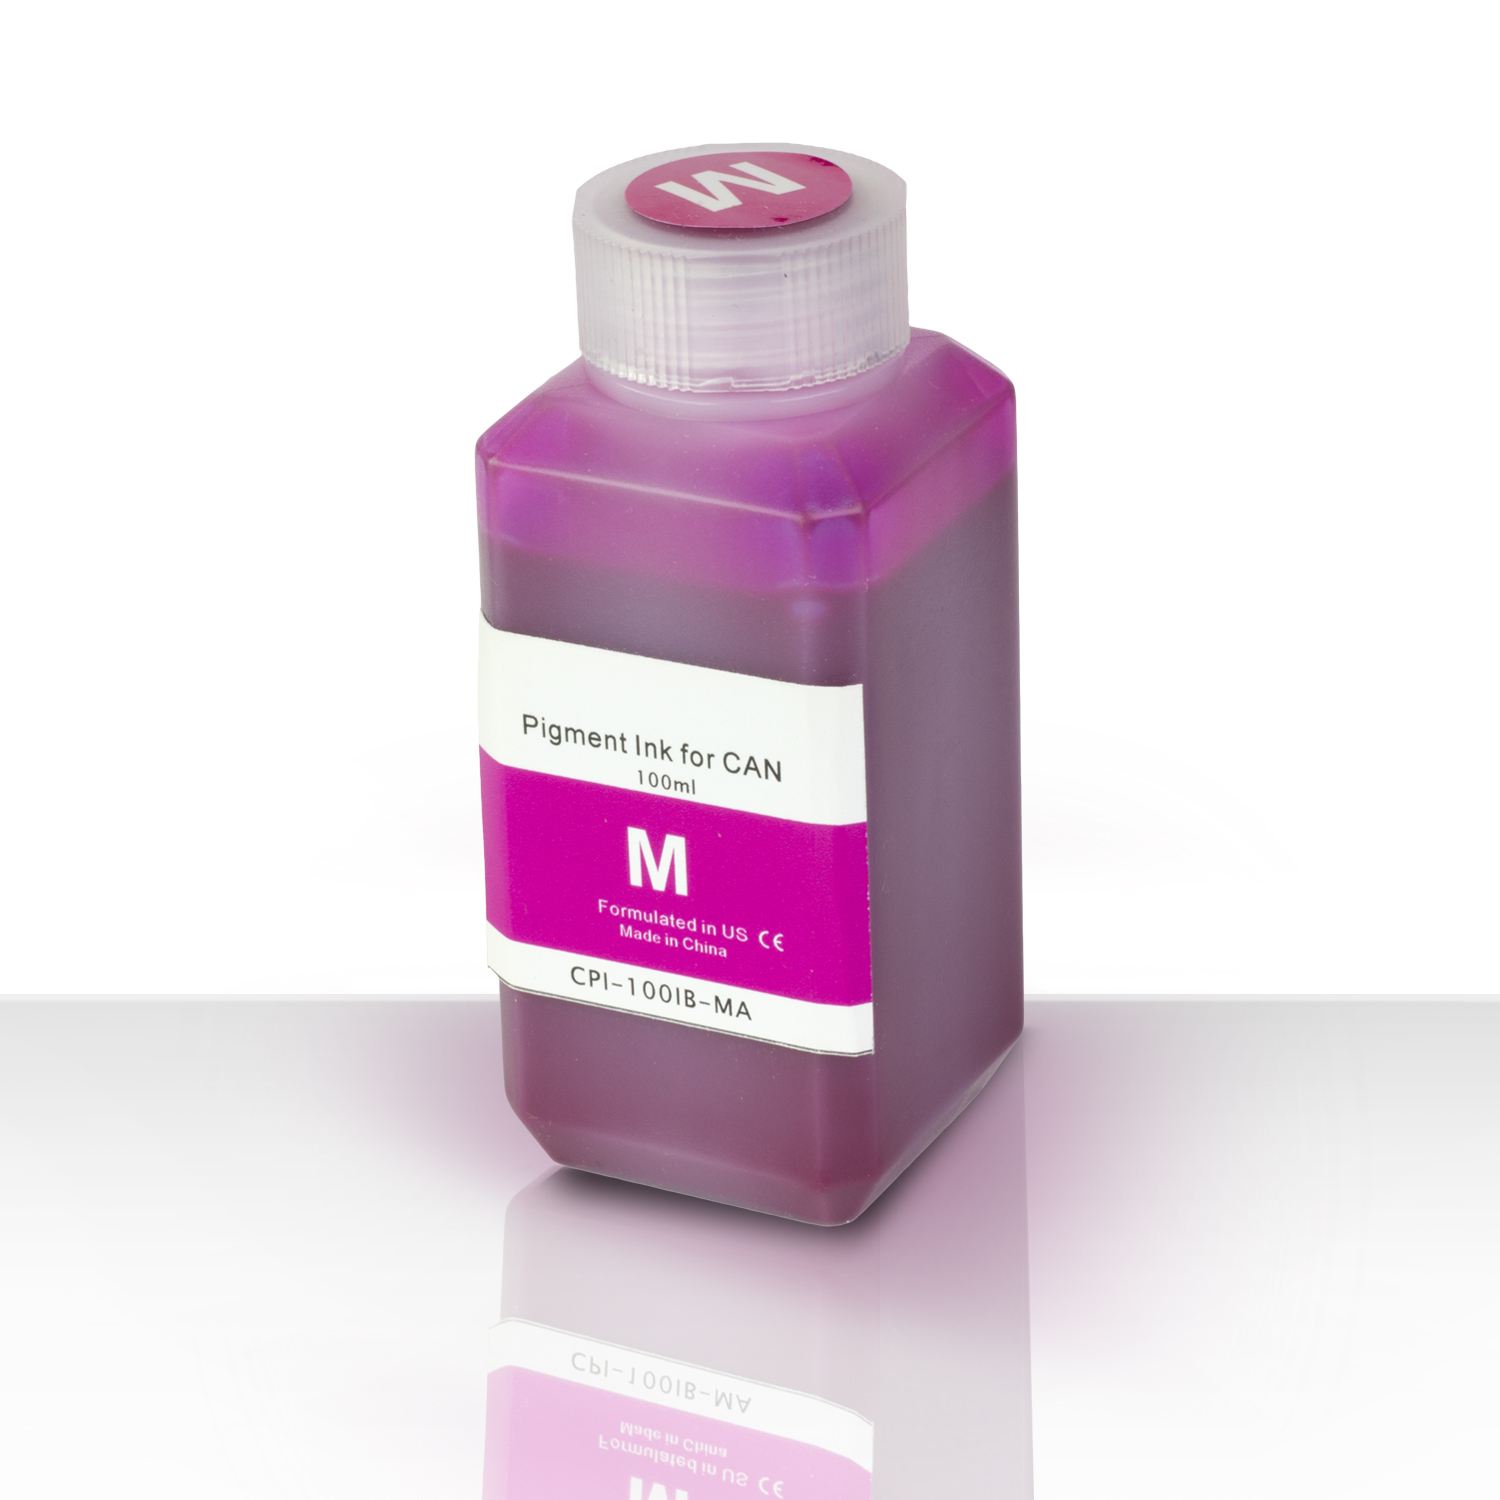 1 PK - Canon Compatible Magenta Pigment Refill Ink Bottle 100ML (3.38 fl oz) Bottle + Refill Tool Kit by SOJIINK